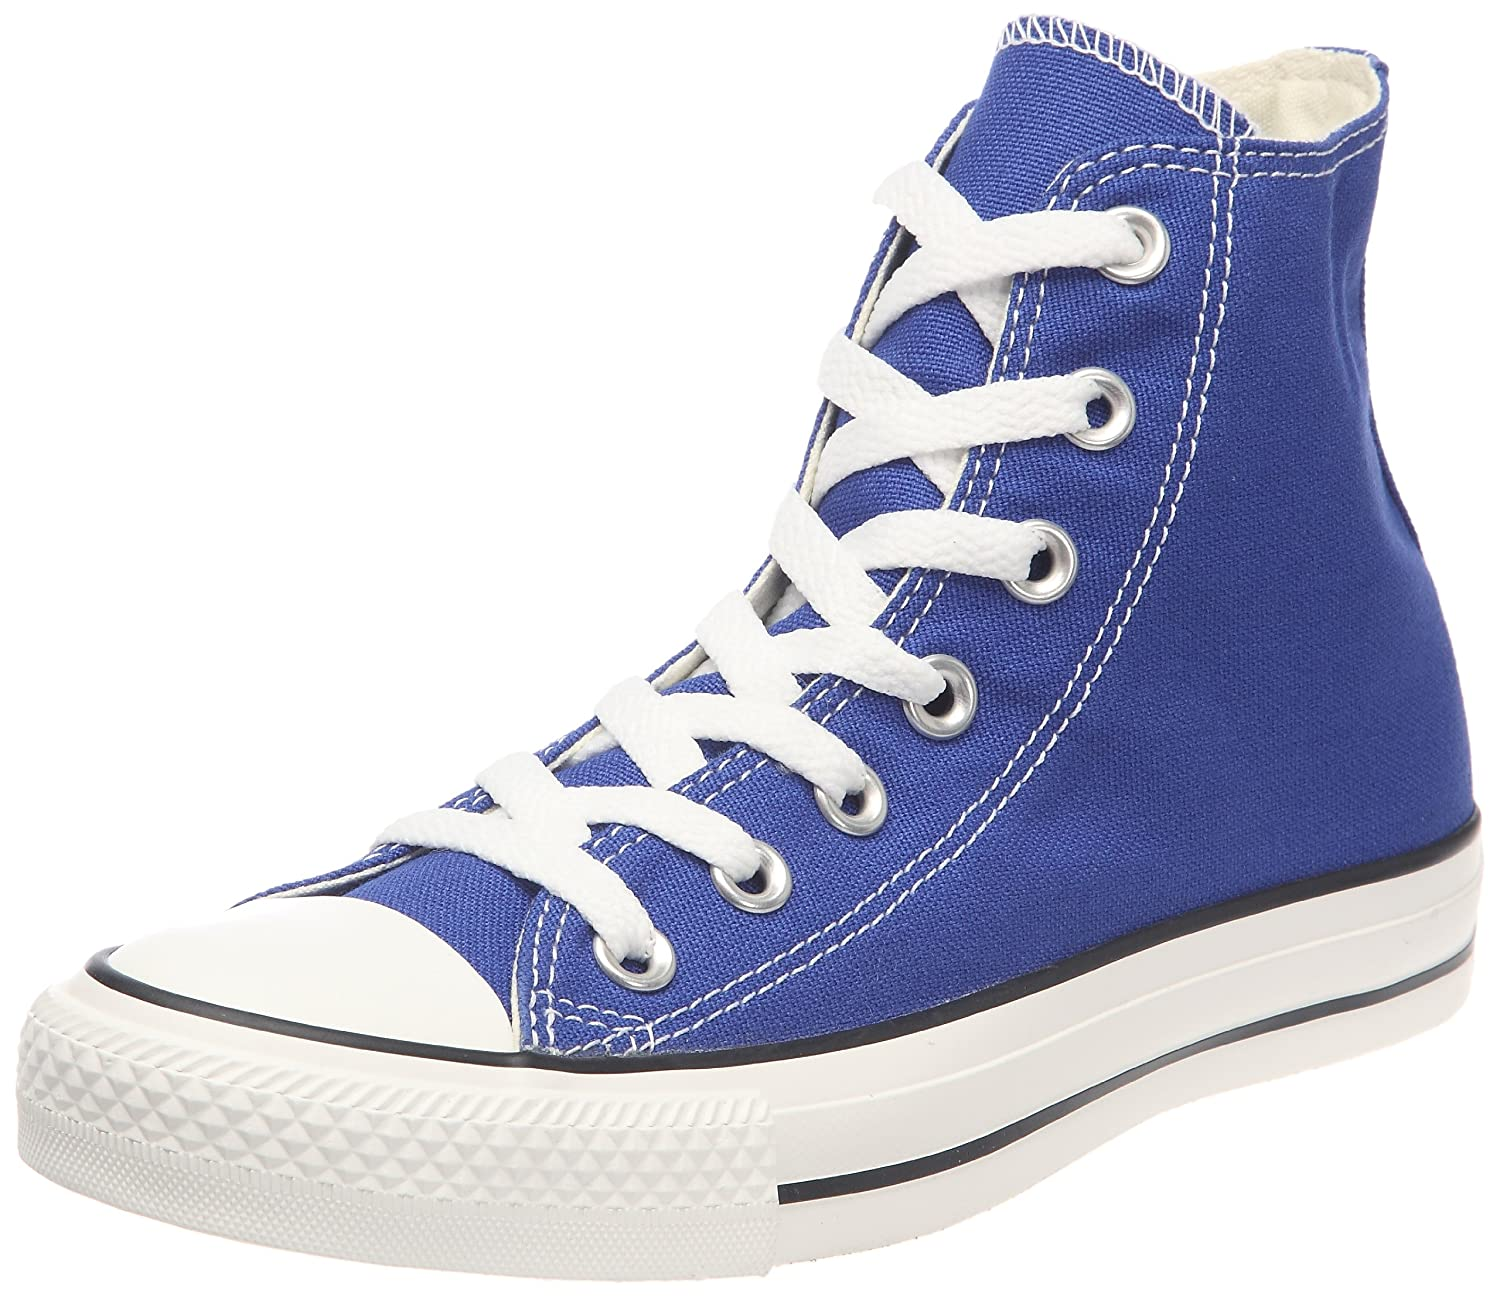 Converse Chuck Taylor All Star Core Hi B00IRXCH3A 15 B(M) US Women / 13 D(M) US Men|Navy